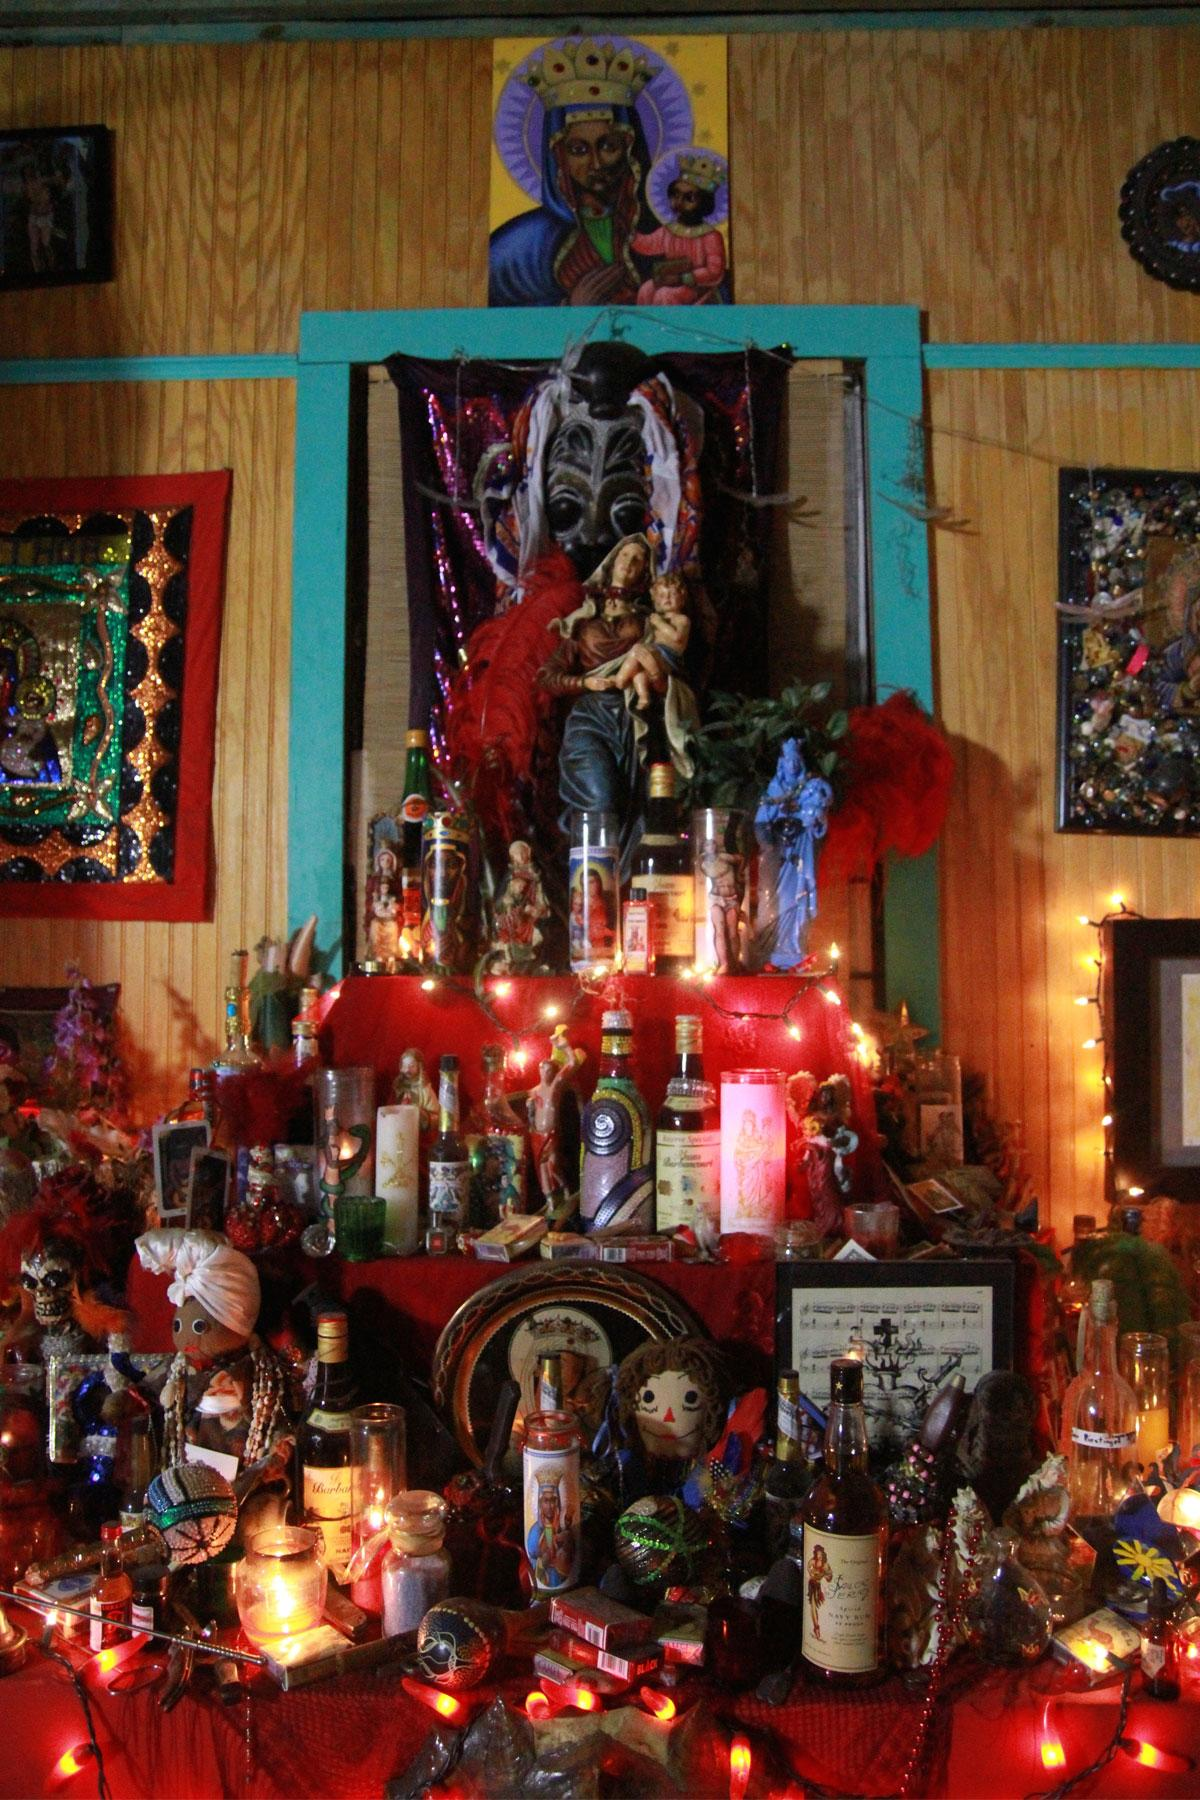 How To Participate In Voodoo Vodou Ceremonies In New Orleans